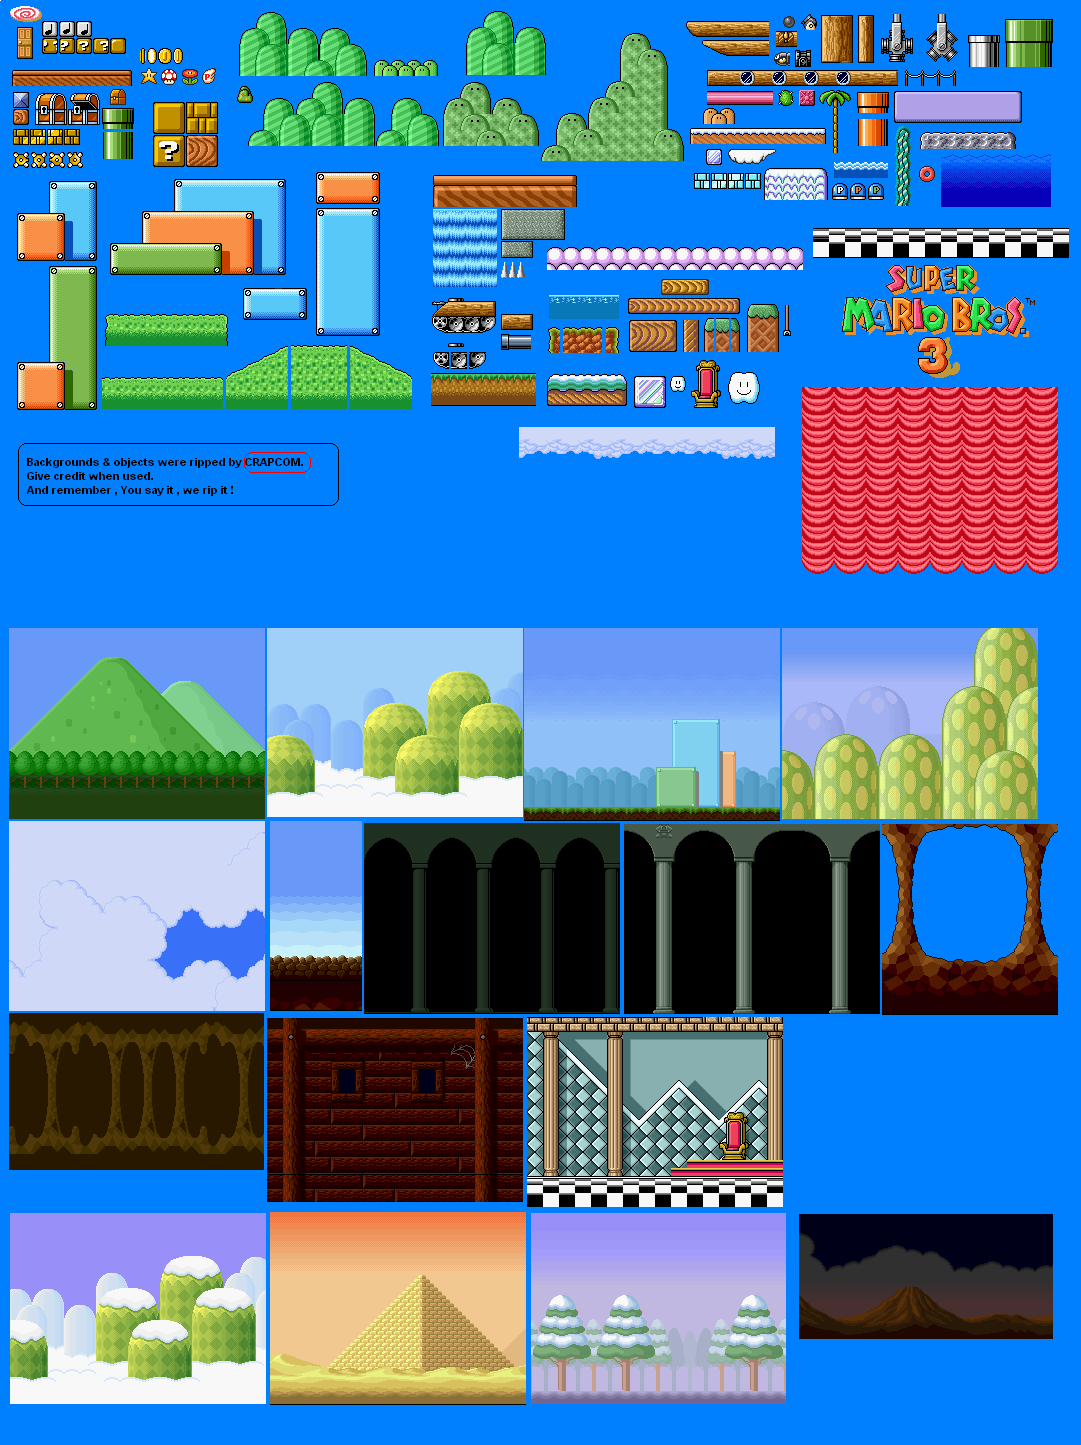 Super Mario All Stars Bros 3 Backgrounds And Objects